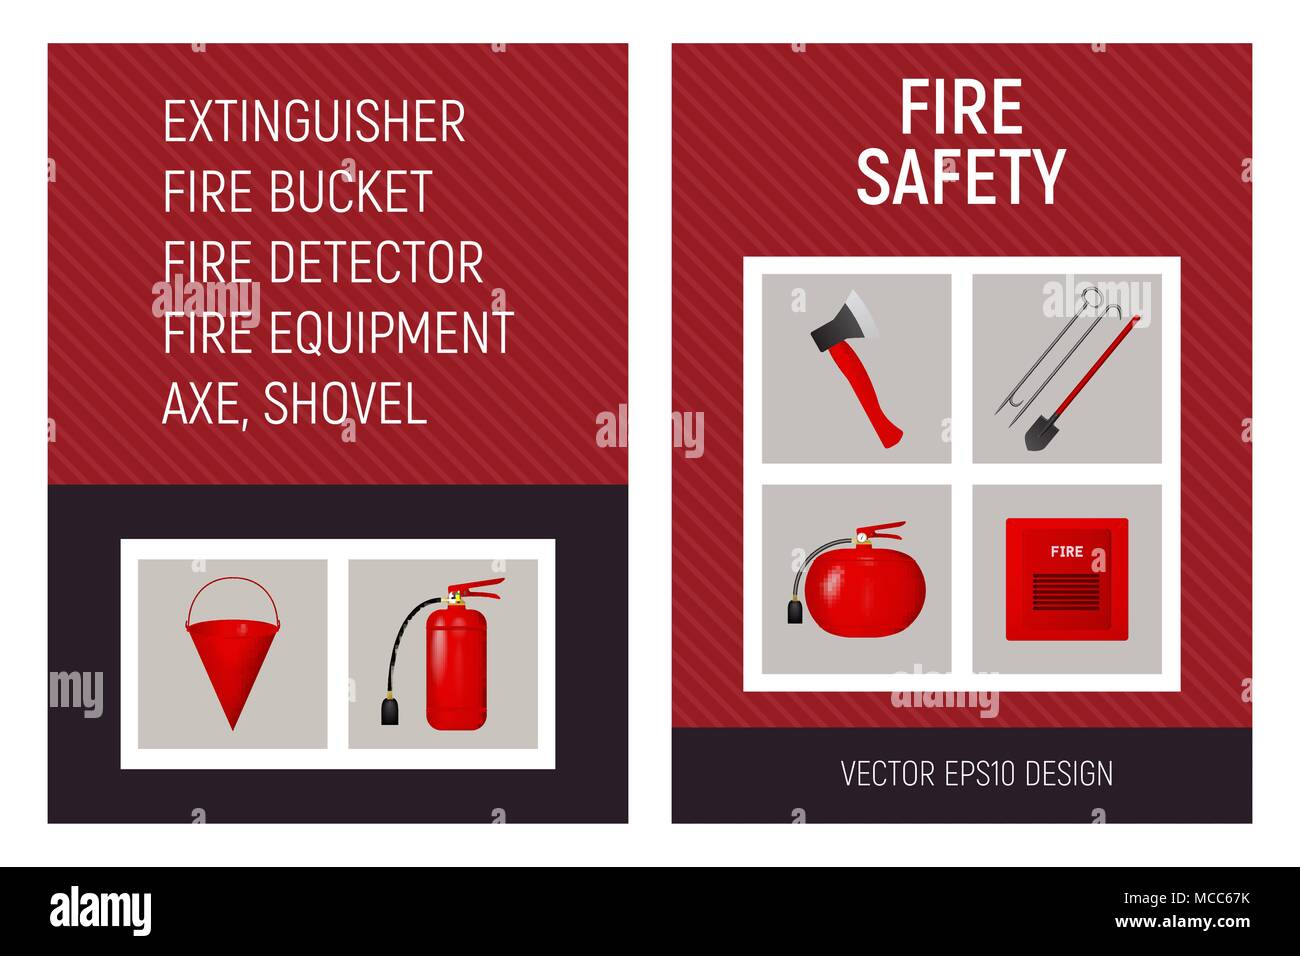 fire safety brochure concept template stock vector art